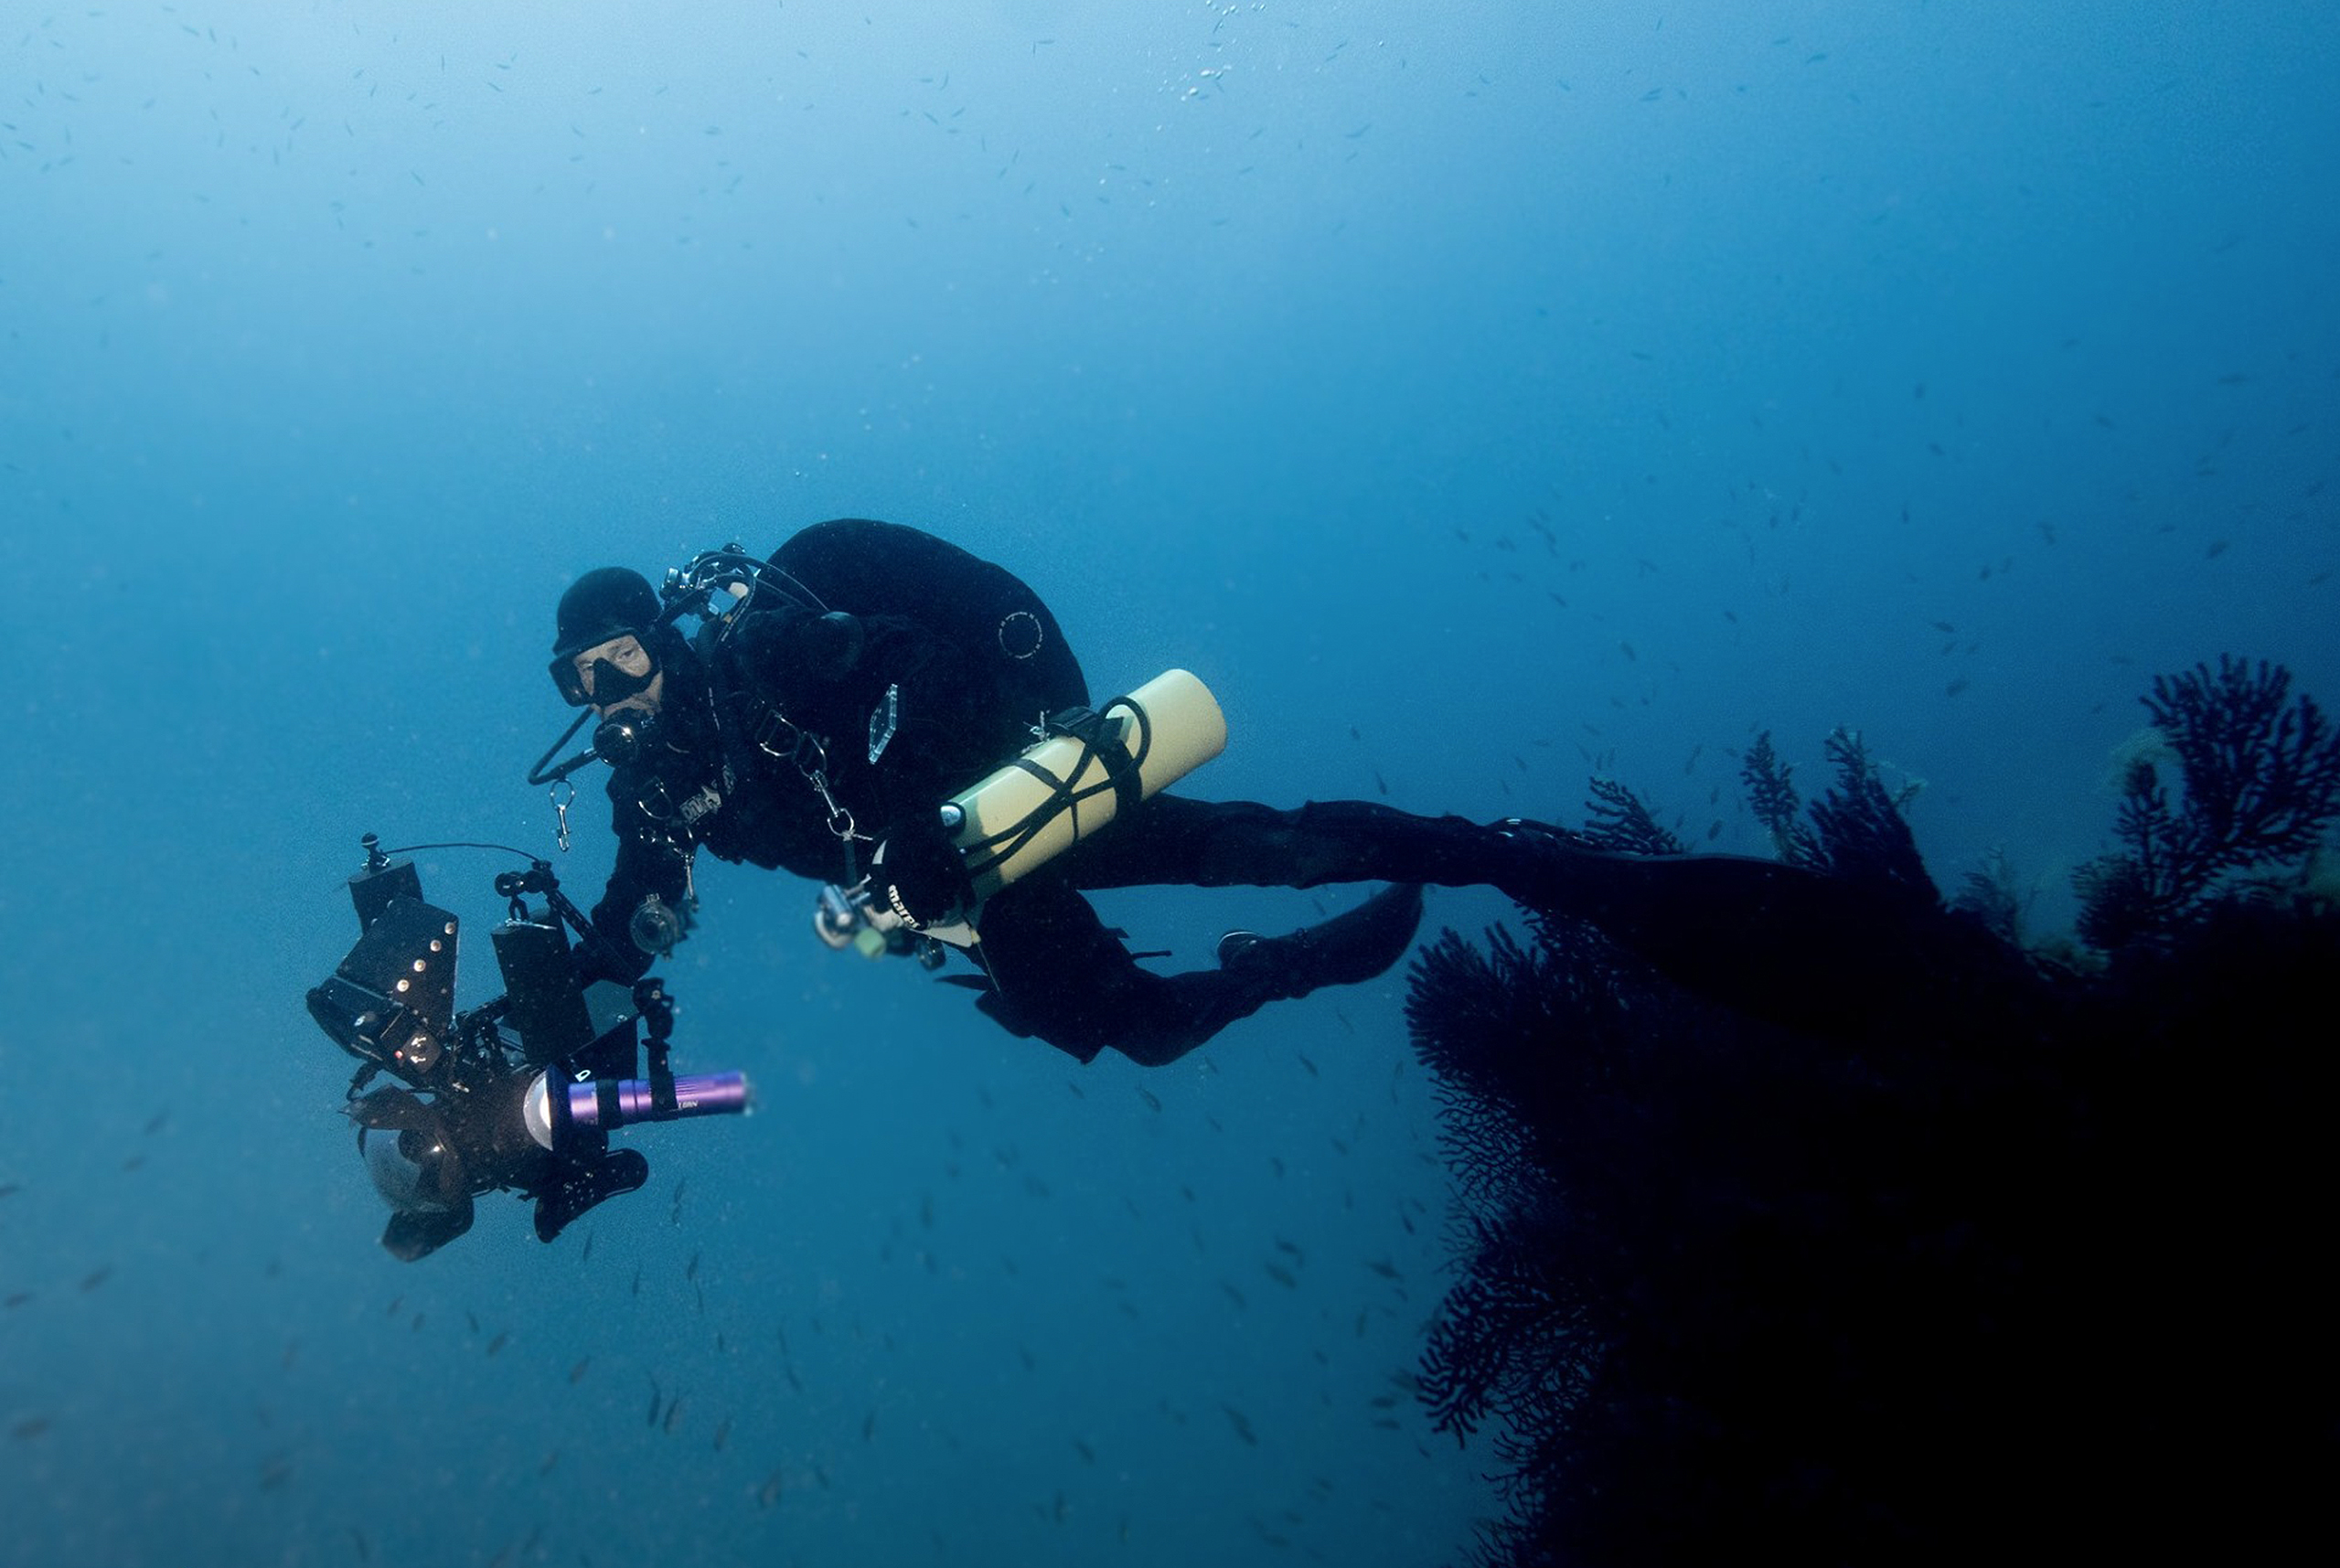 flavio_oliva_underwater_cinematography_12